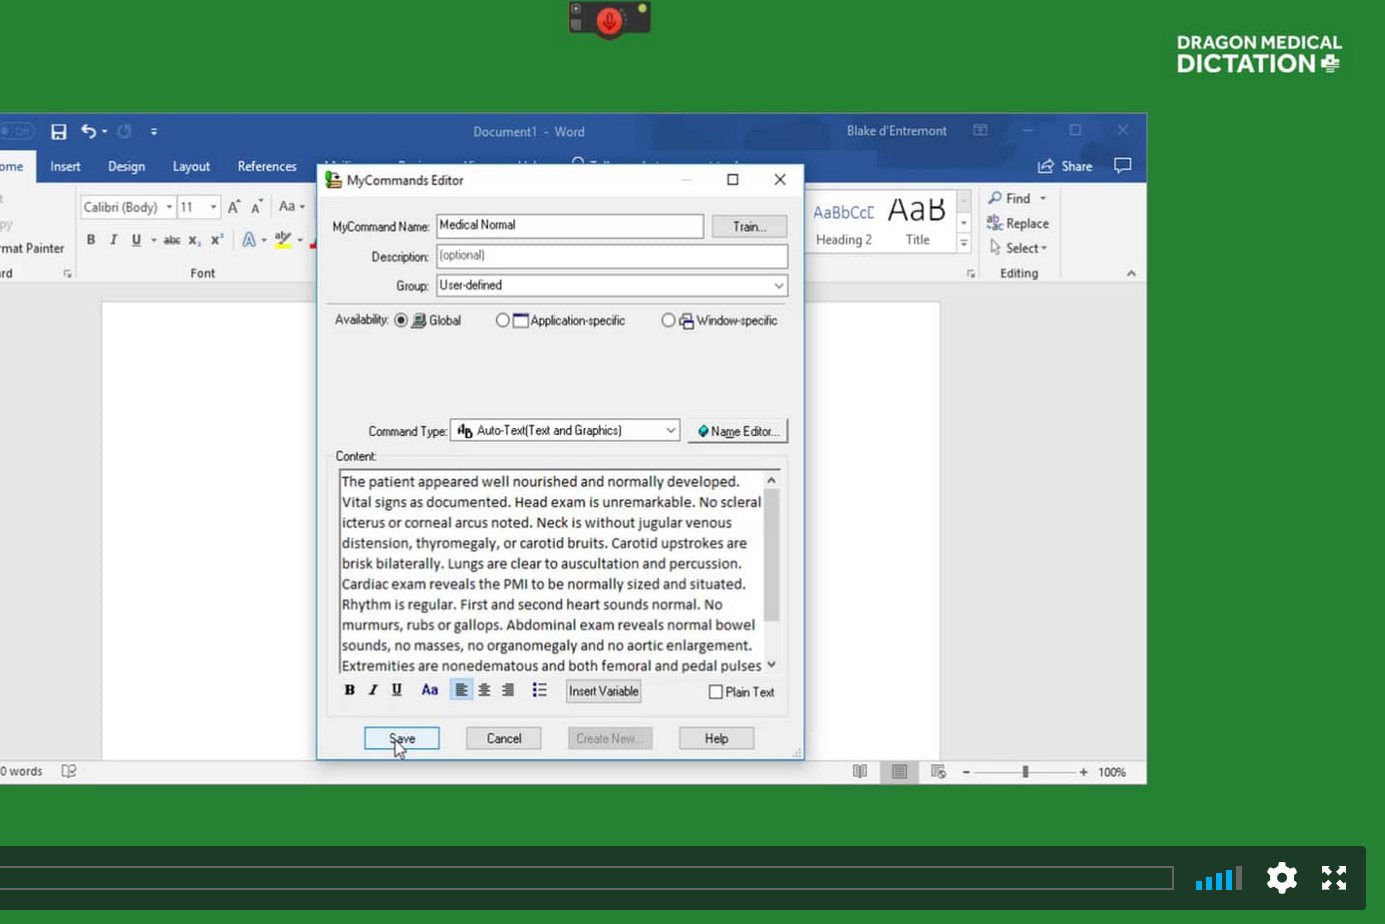 TUTORIAL #9: CREATING TEMPLATES IN DRAGON   This brief tutorial goes over how to create fully customizable templates in Dragon Medical which can be called up by voice in any field.